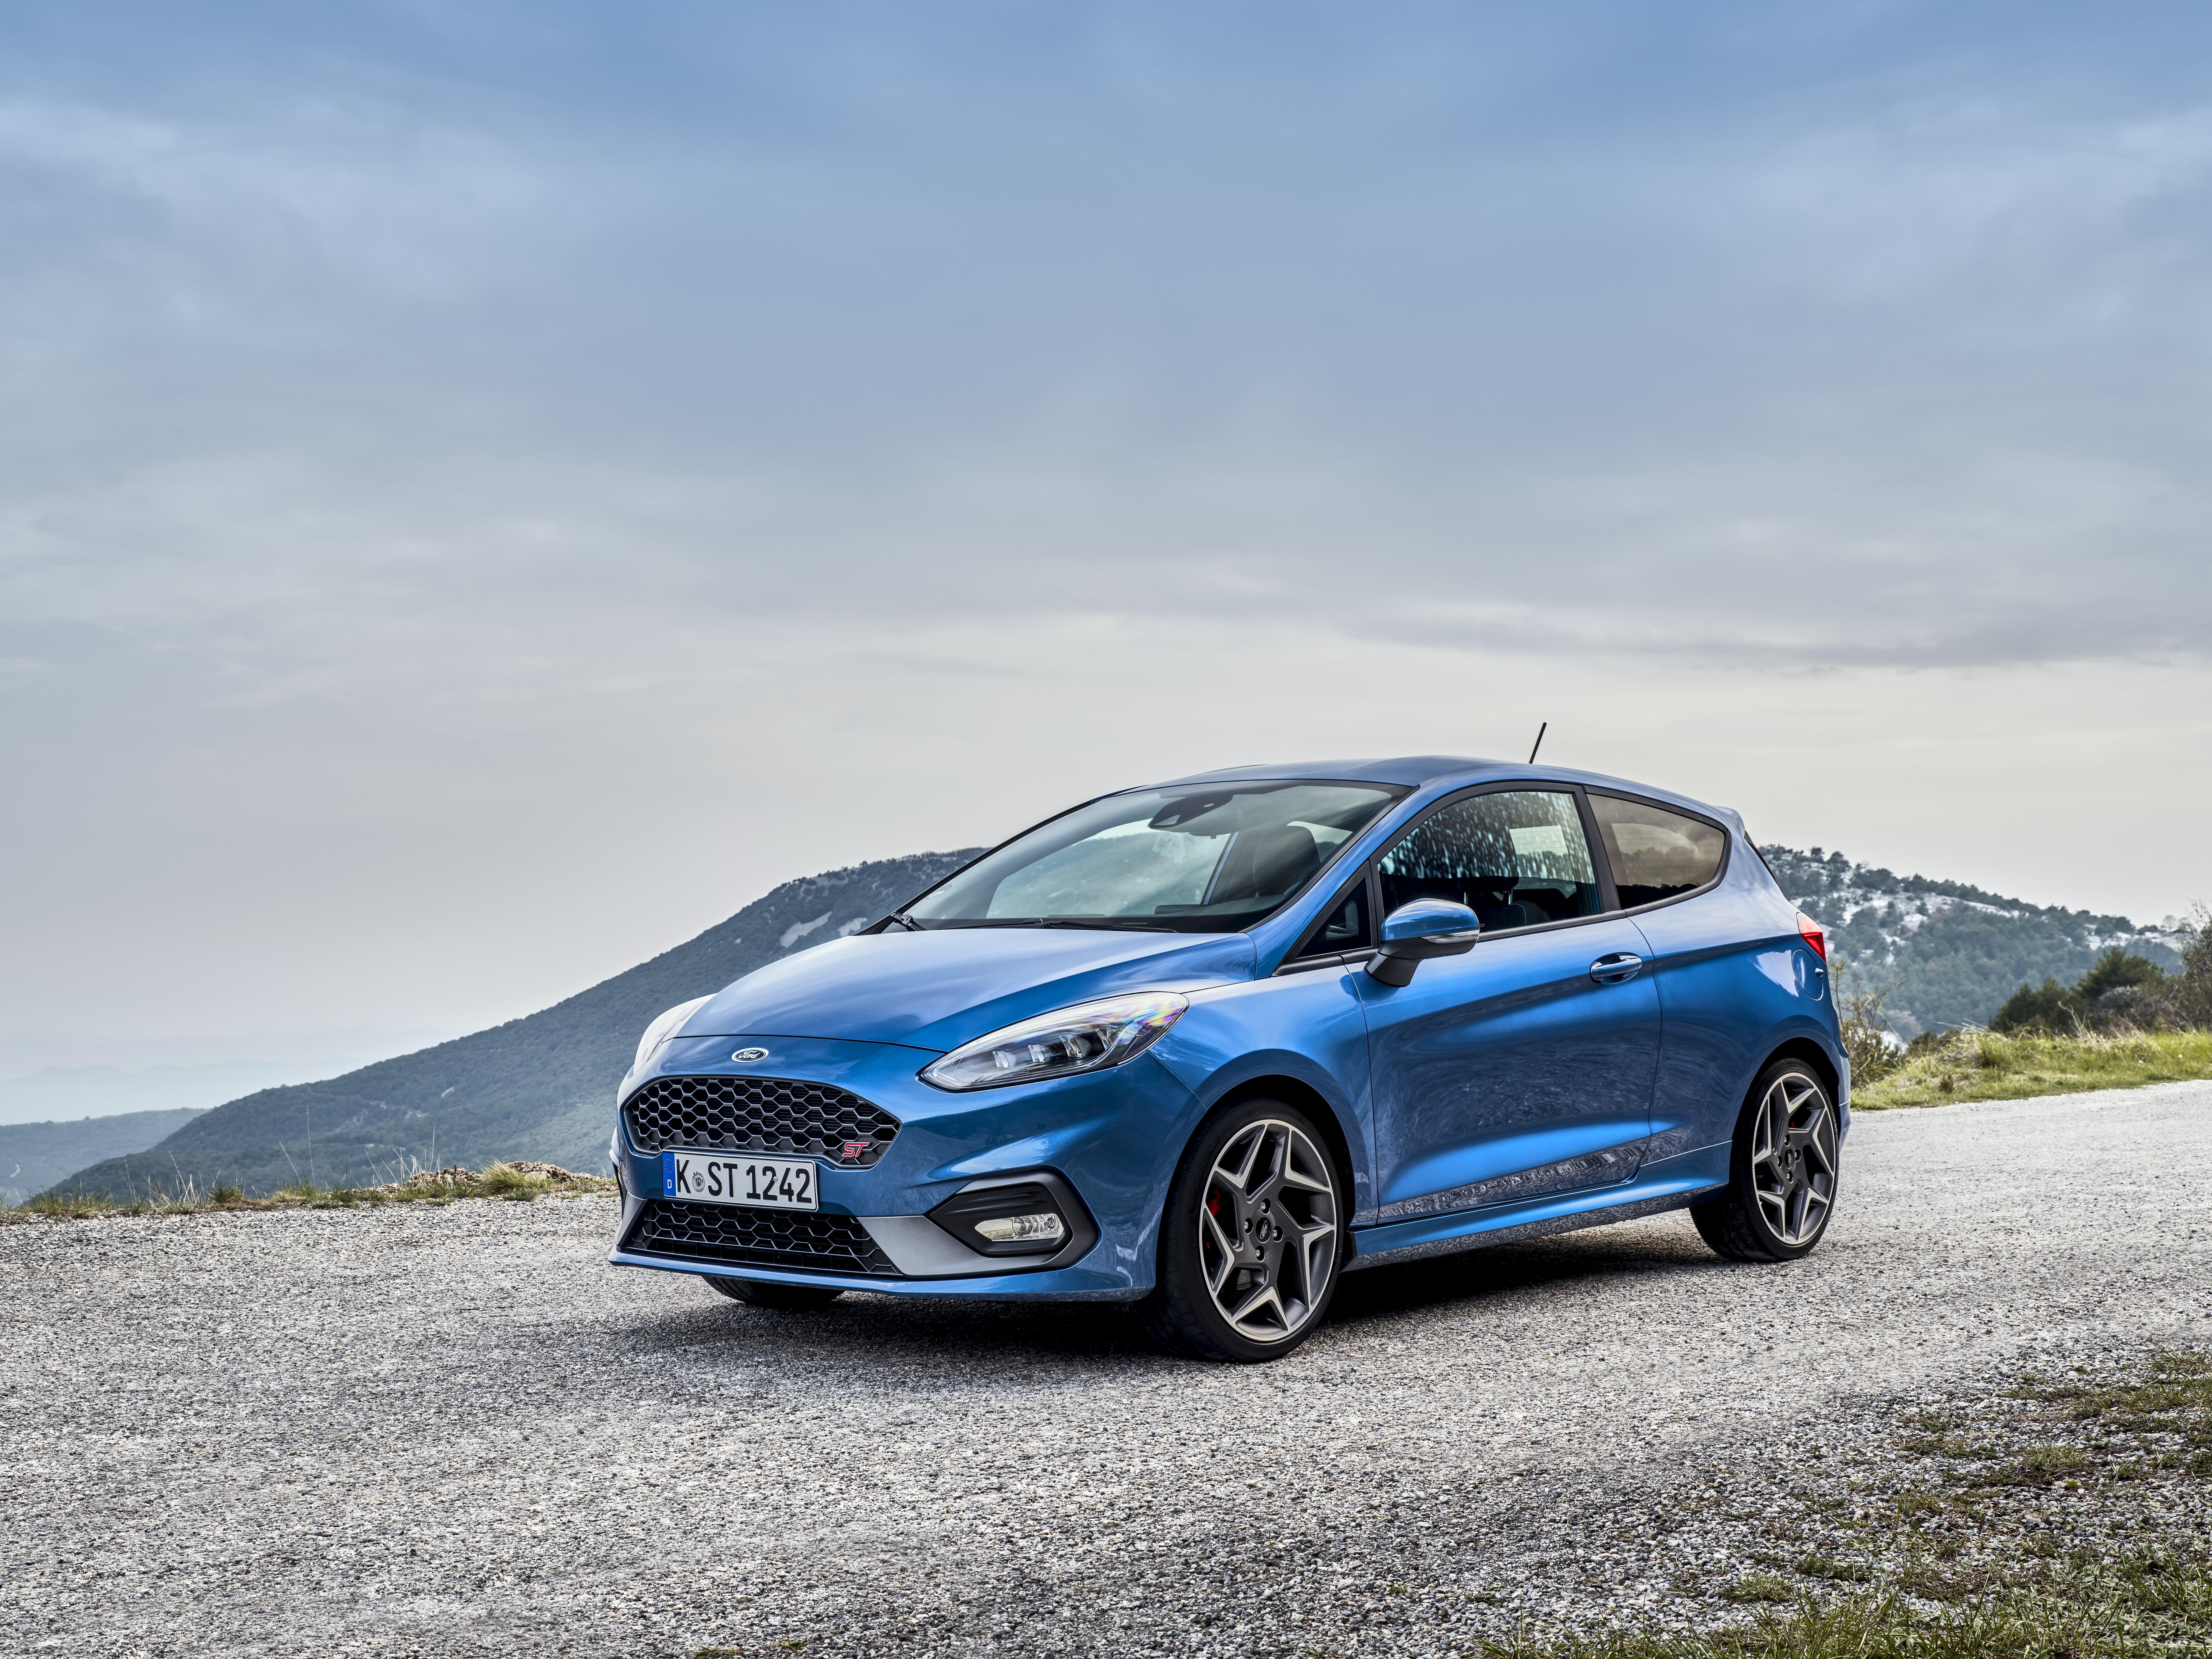 Ford Fiesta ST 3 cylindres 200 ch (2018)